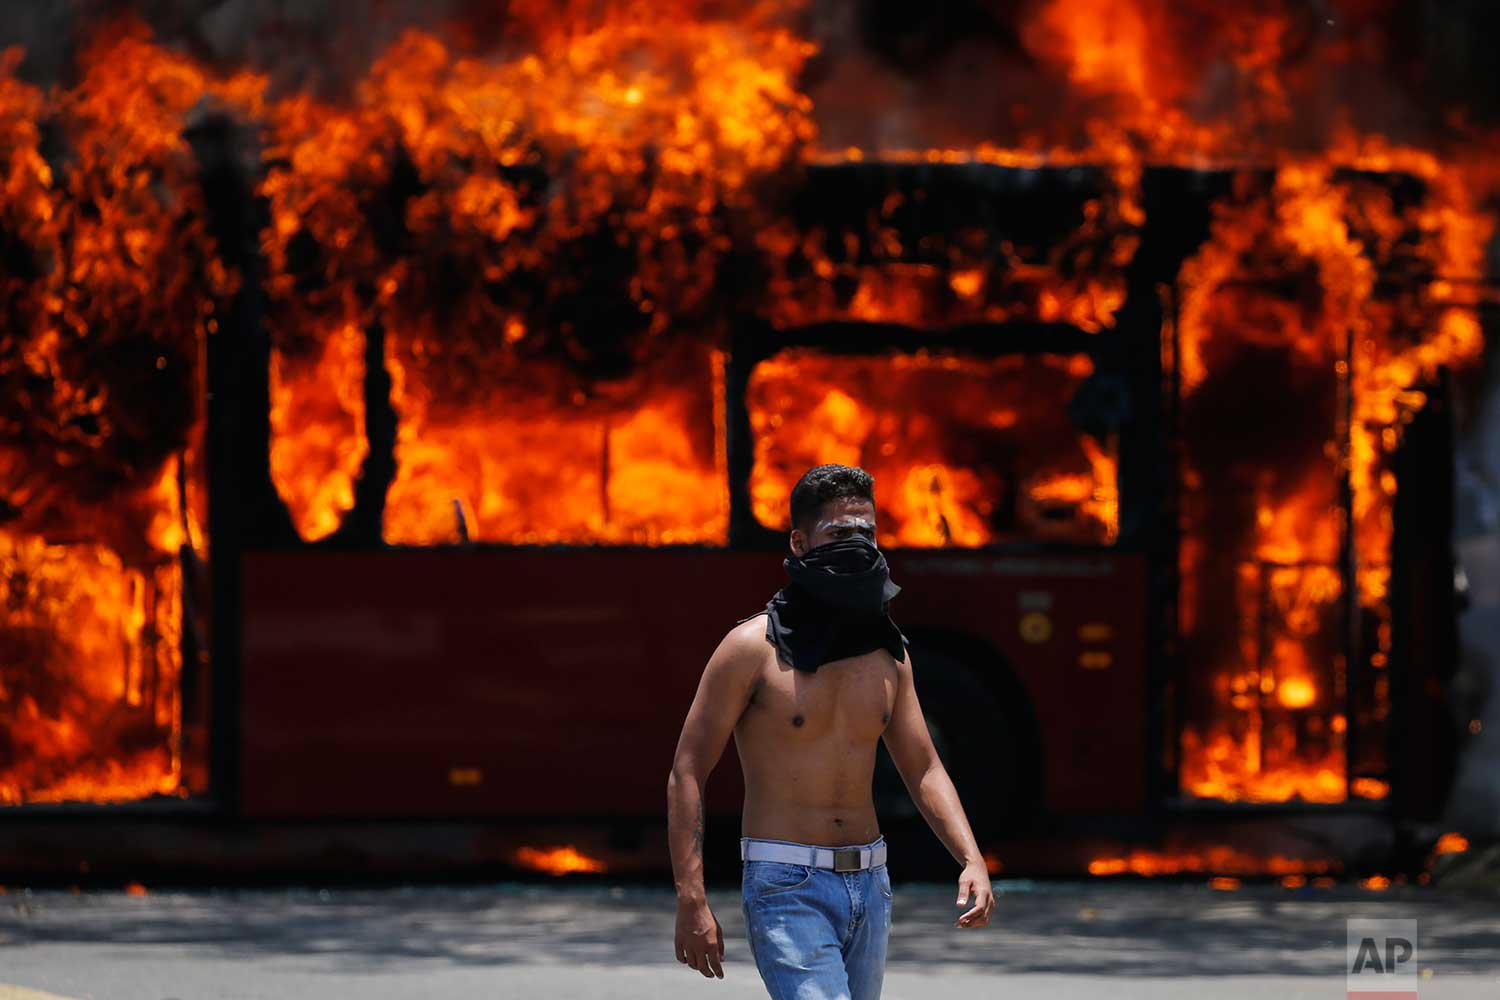 An anti-government protester walks near a bus that was set on fire by opponents of Venezuela's President Nicolas Maduro during clashes between rebel and loyalist soldiers in Caracas, Venezuela, Tuesday, April 30, 2019. Venezuelan opposition leader Juan Guaido took to the streets with a small contingent of heavily armed troops early Tuesday in a bold and risky call for the military to rise up and oust Maduro. (AP Photo/Fernando Llano)